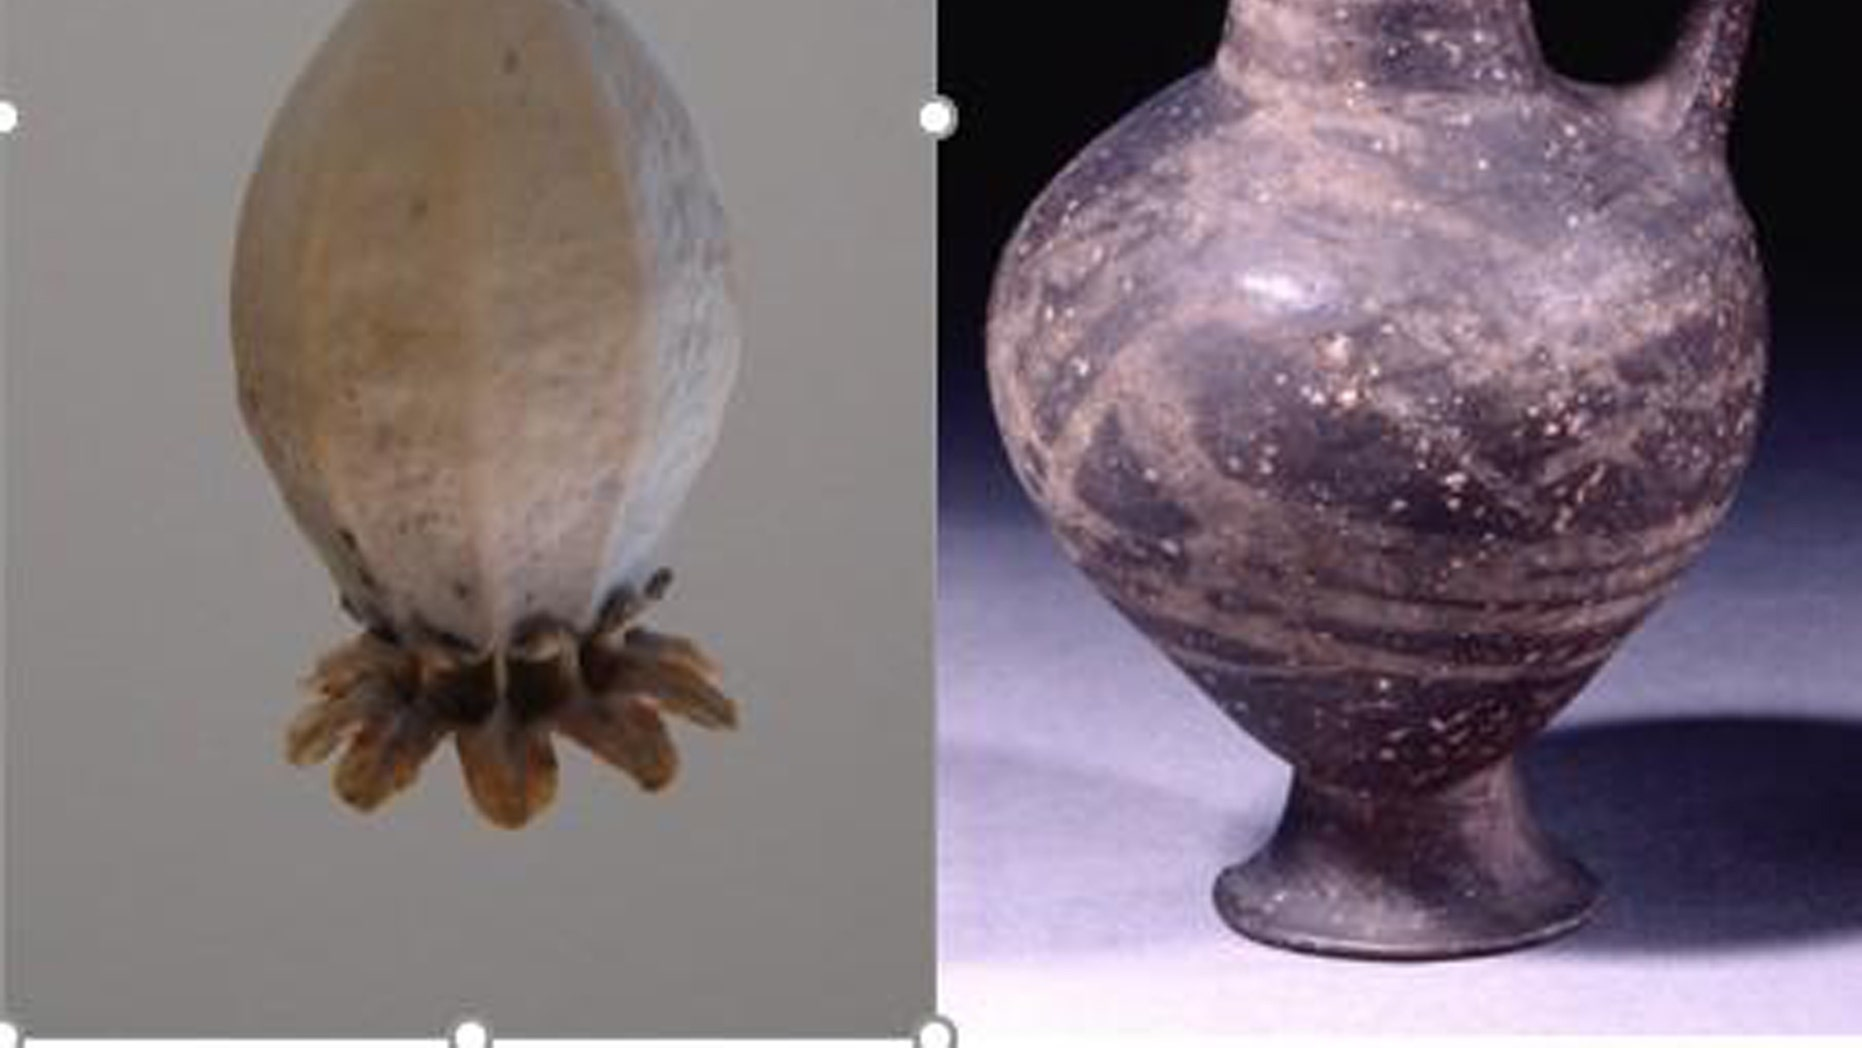 The base-ring juglet resembles the seed head of an opium poppy. (Credit: British Museum)